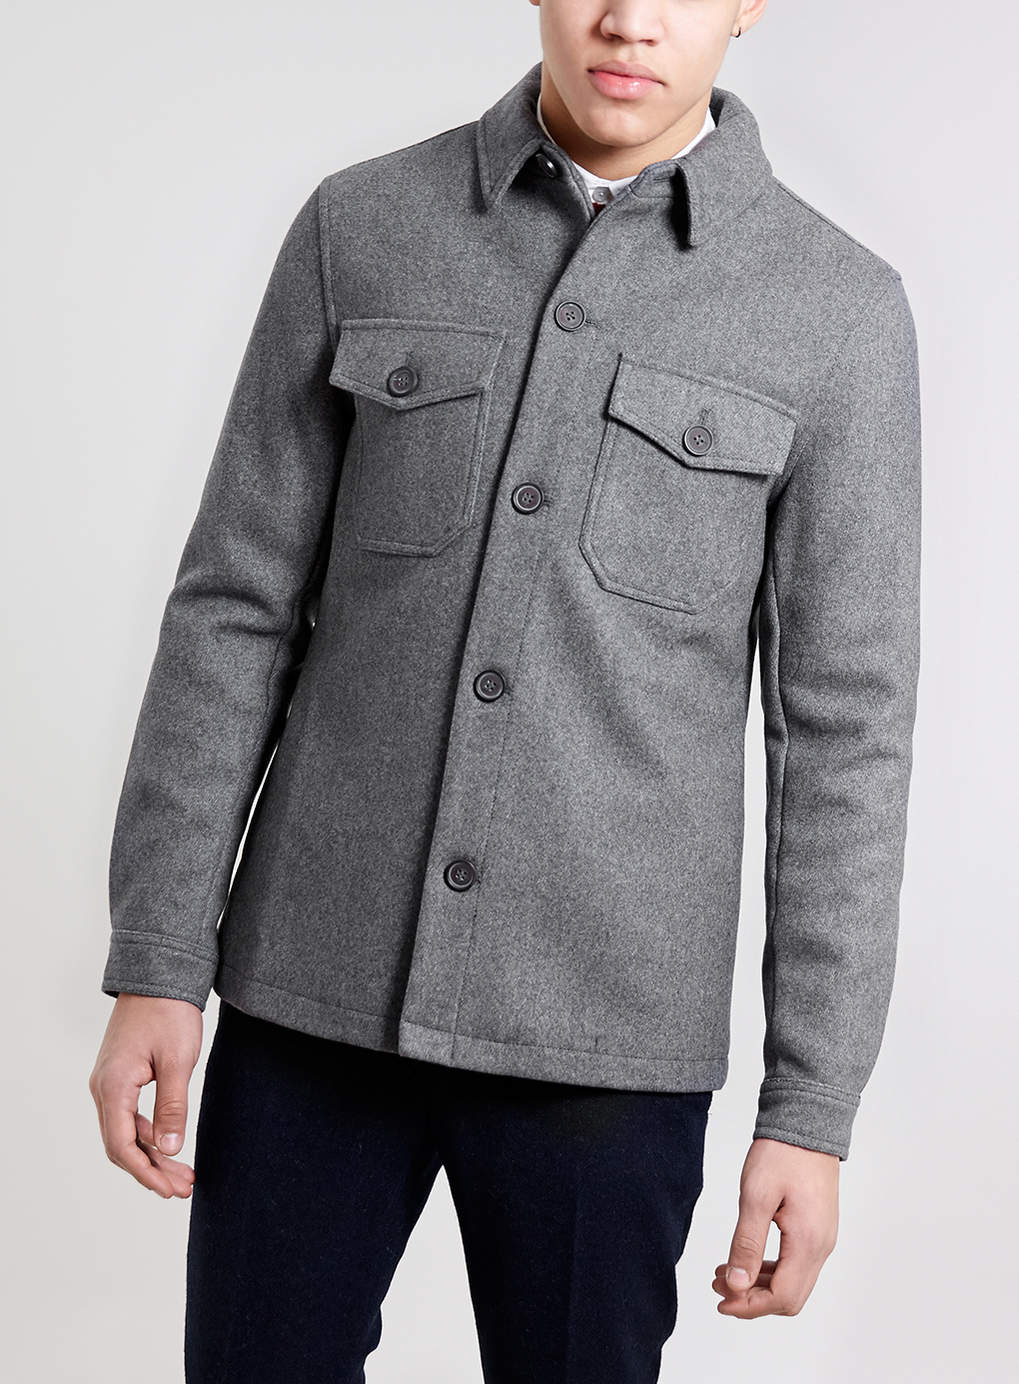 Topman Grey Wool Blend Shacket In Gray For Men Grey Lyst